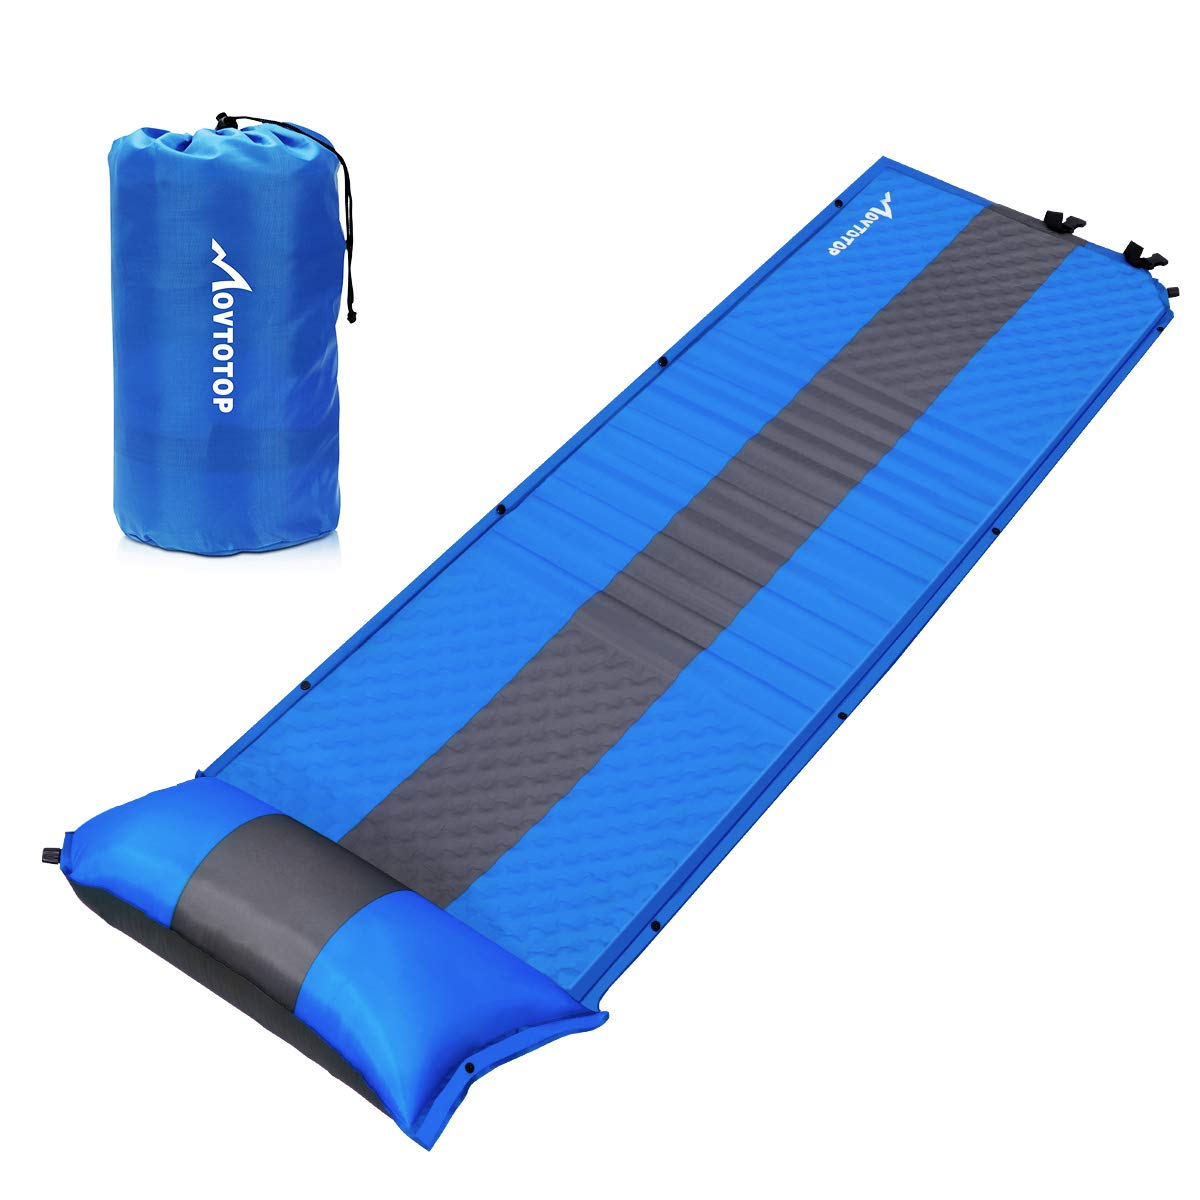 MOVTOTOP Self Inflating Sleeping Pad (78.7×25.6×1.2 inches), Comfortable Foam Camping Mat with Attached Self-Inflating Pillow Light Weight Camping Air Mattress for Hiking Backpacking by MOVTOTOP